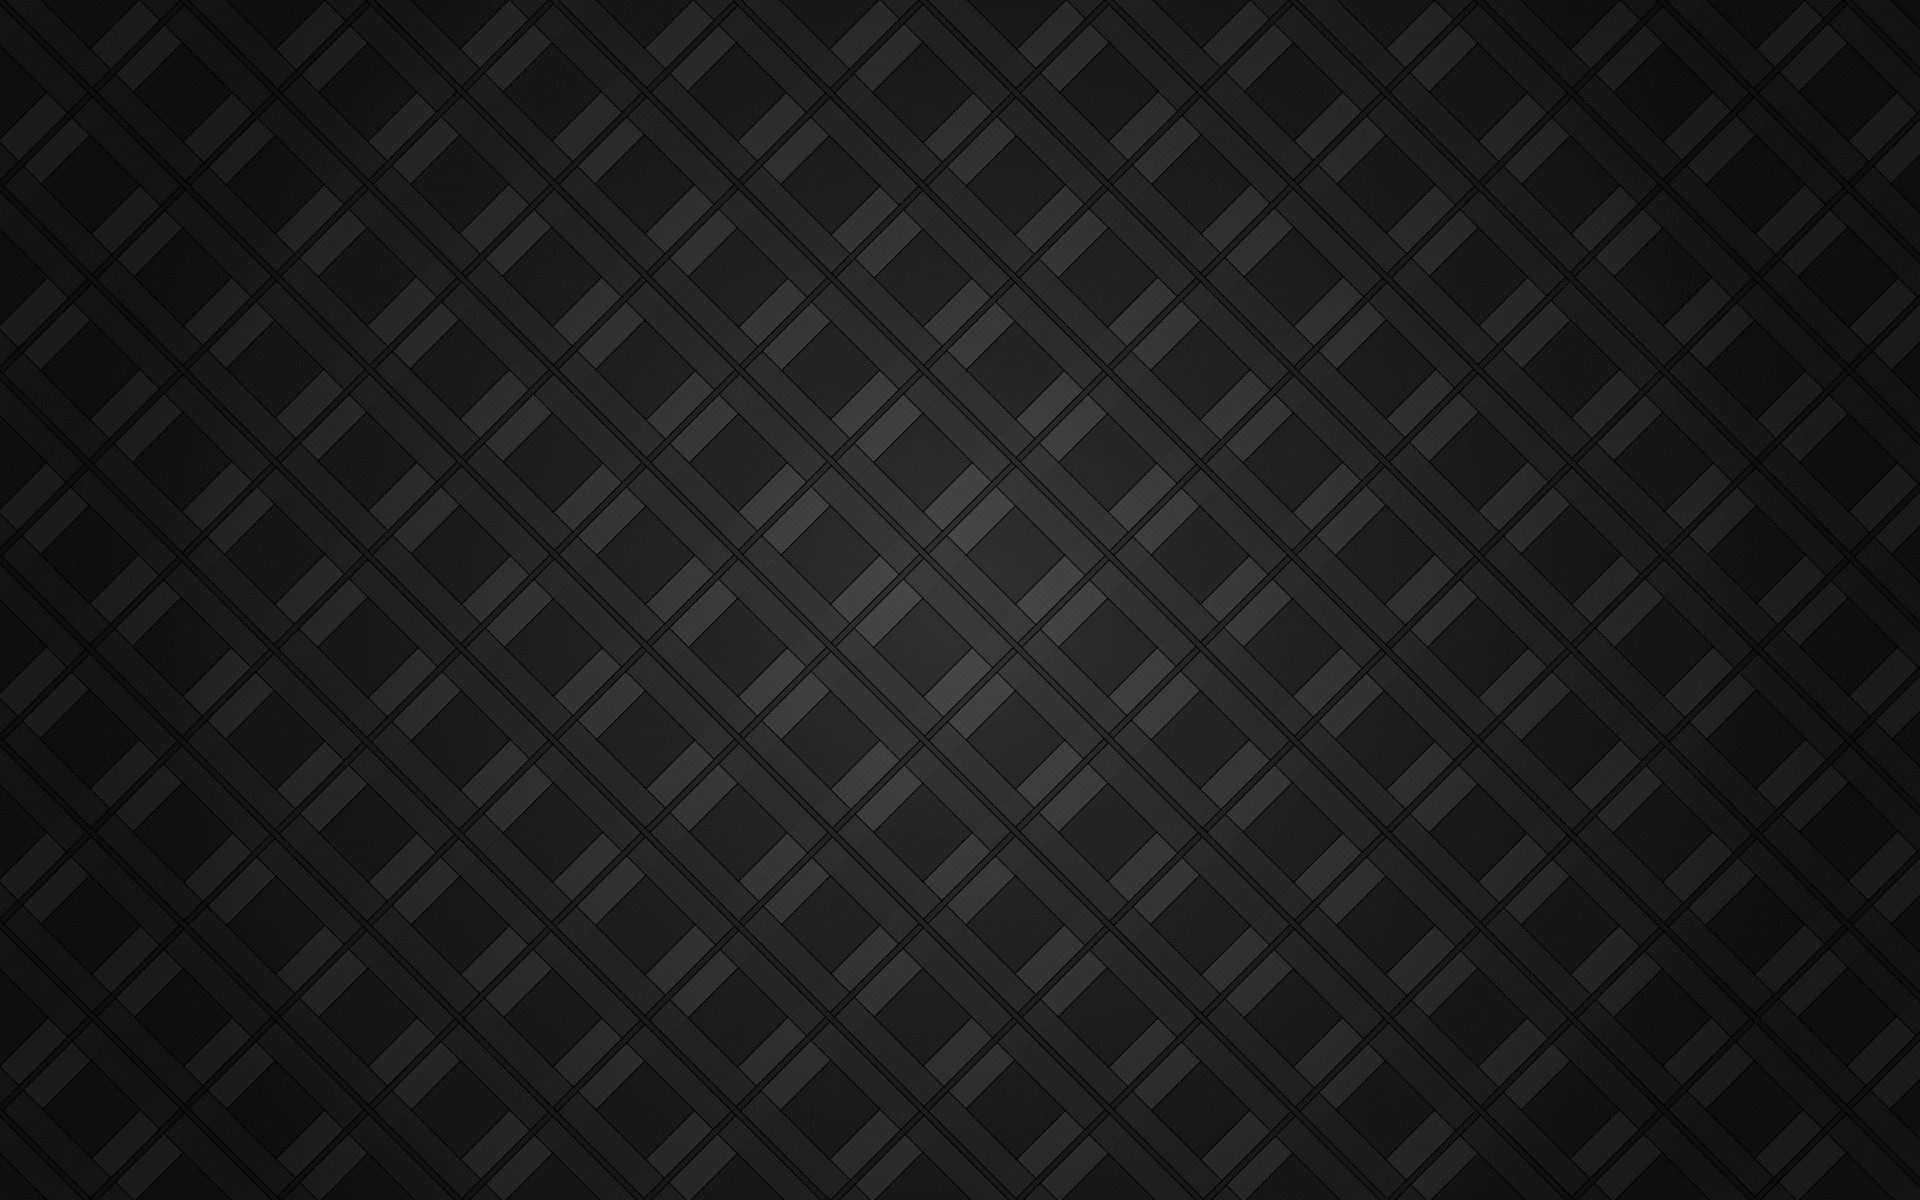 Res: 1920x1200, gallery of bird wallpapers usky com source zd solid gray wallpaper awesome solid  gray backgrounds with gray wallpaper.